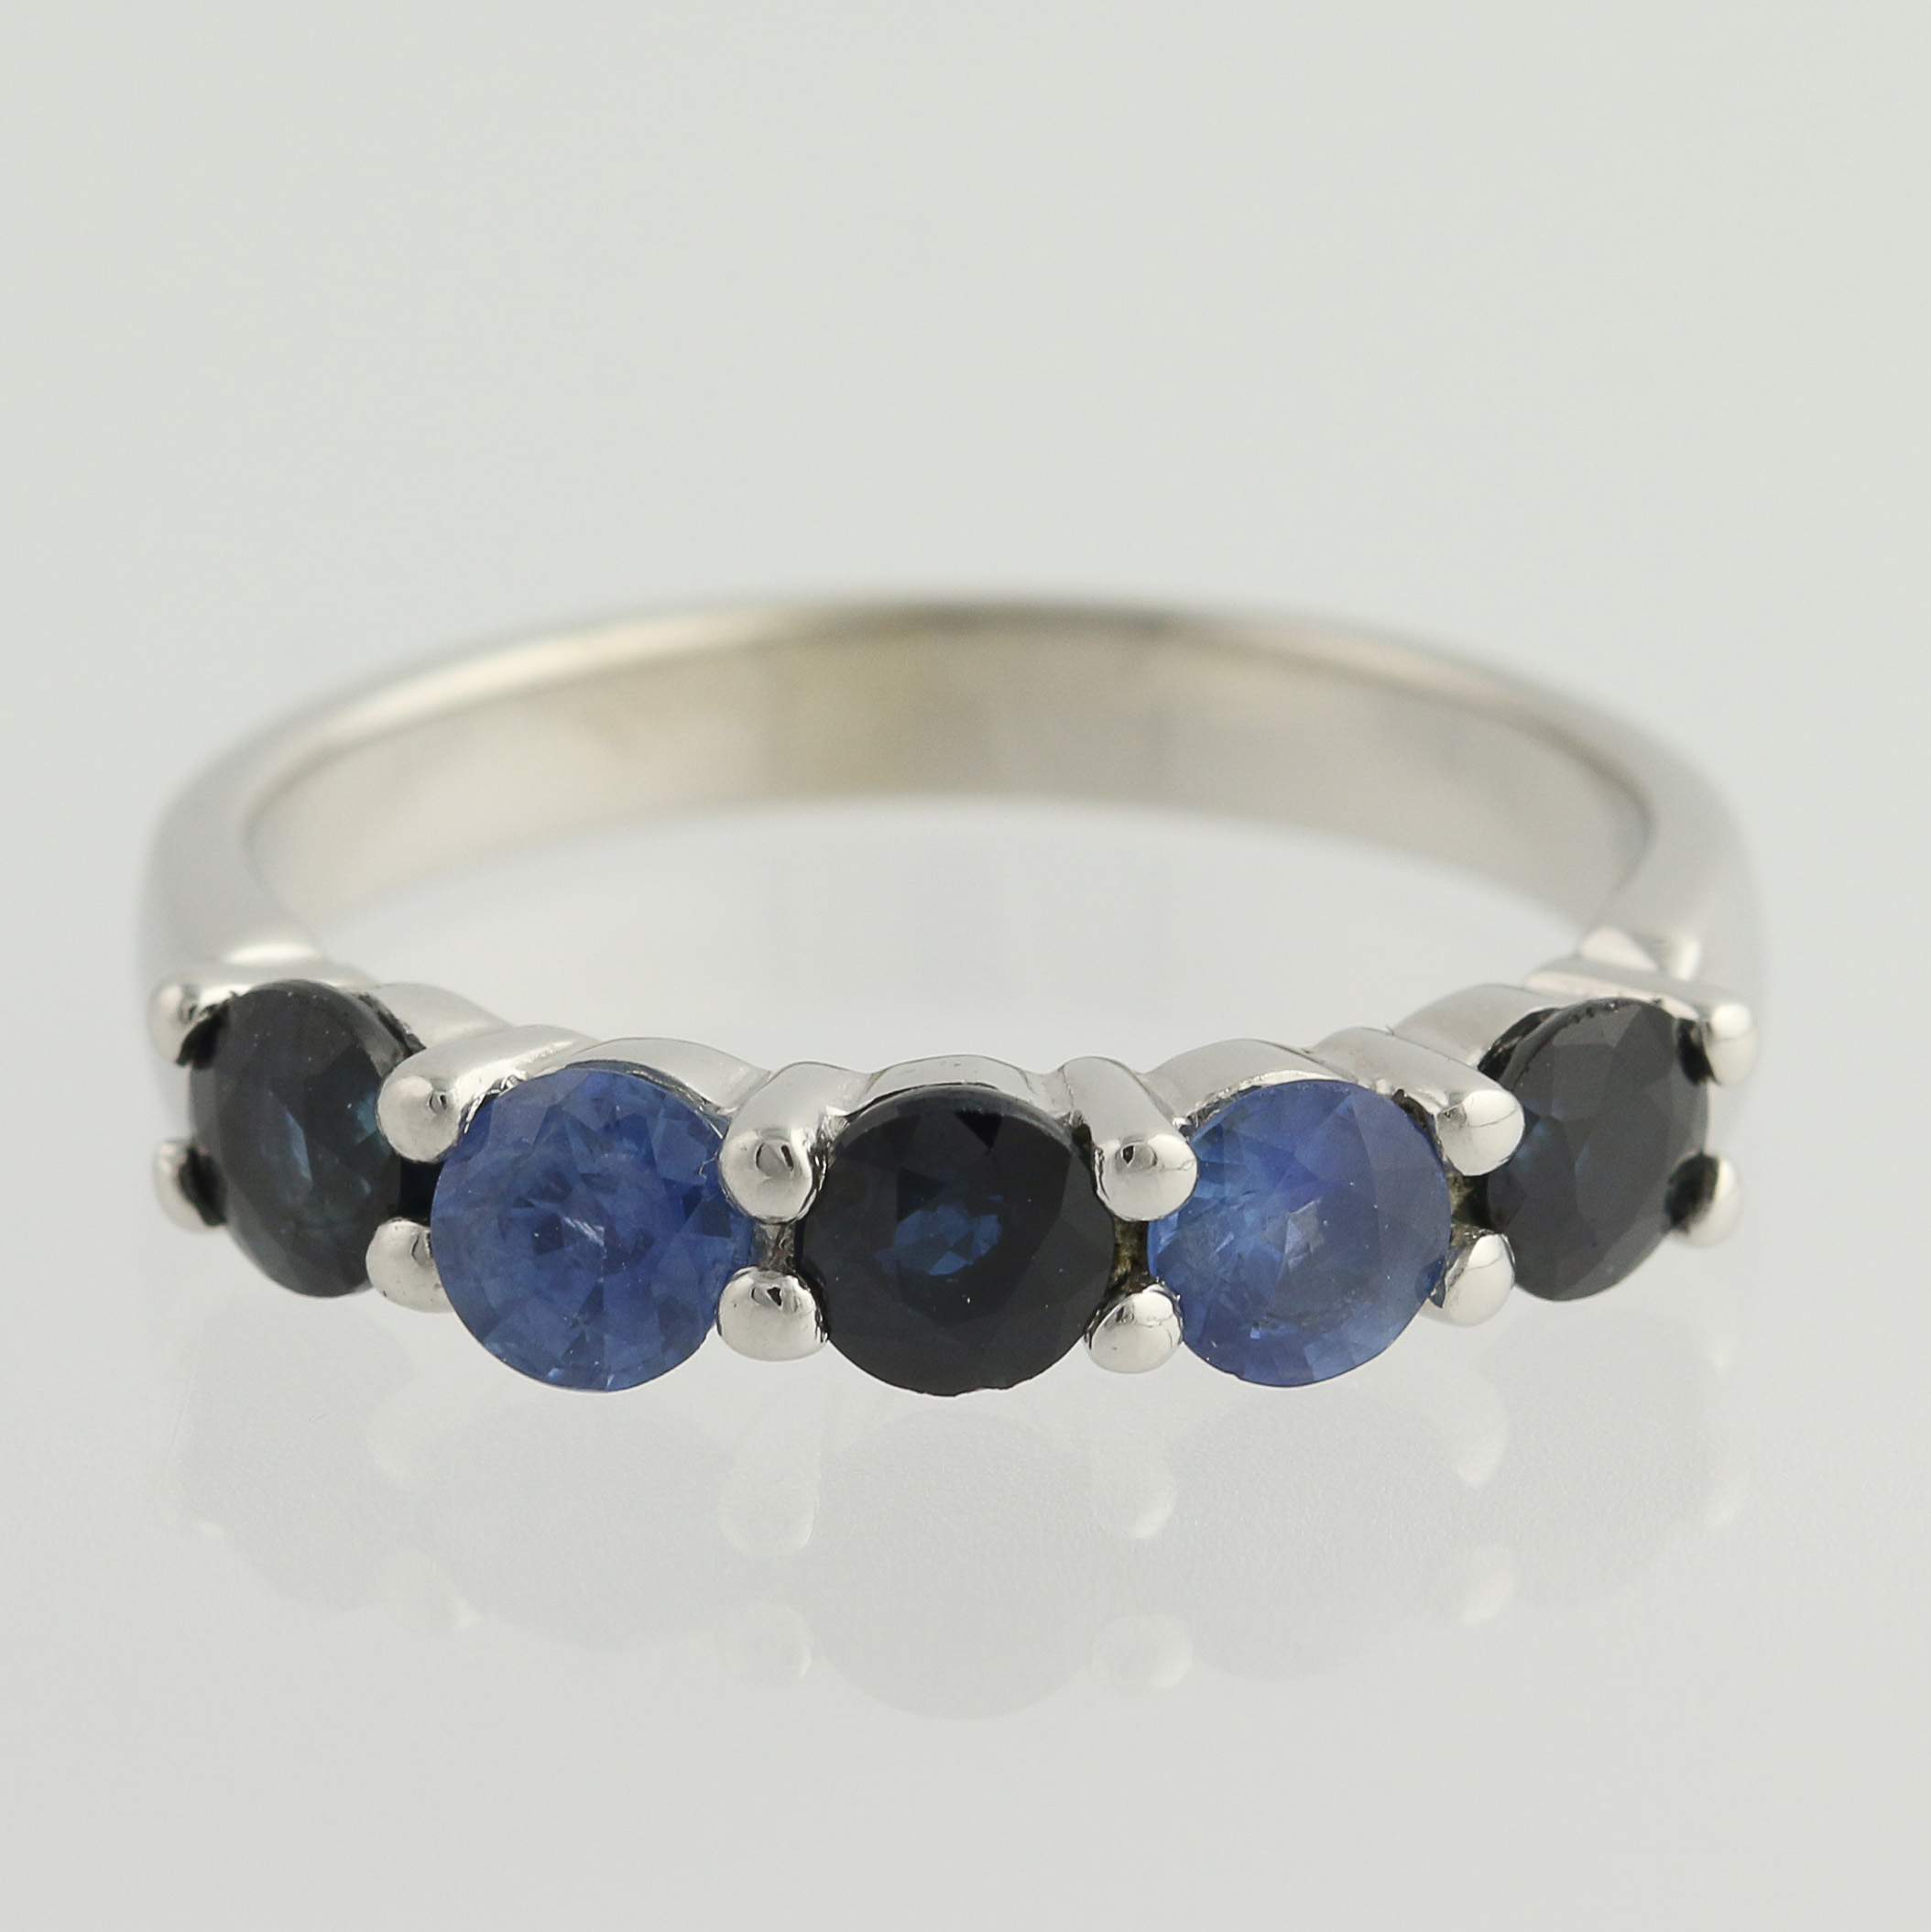 a it sapphire is blue find for september the at birthstone